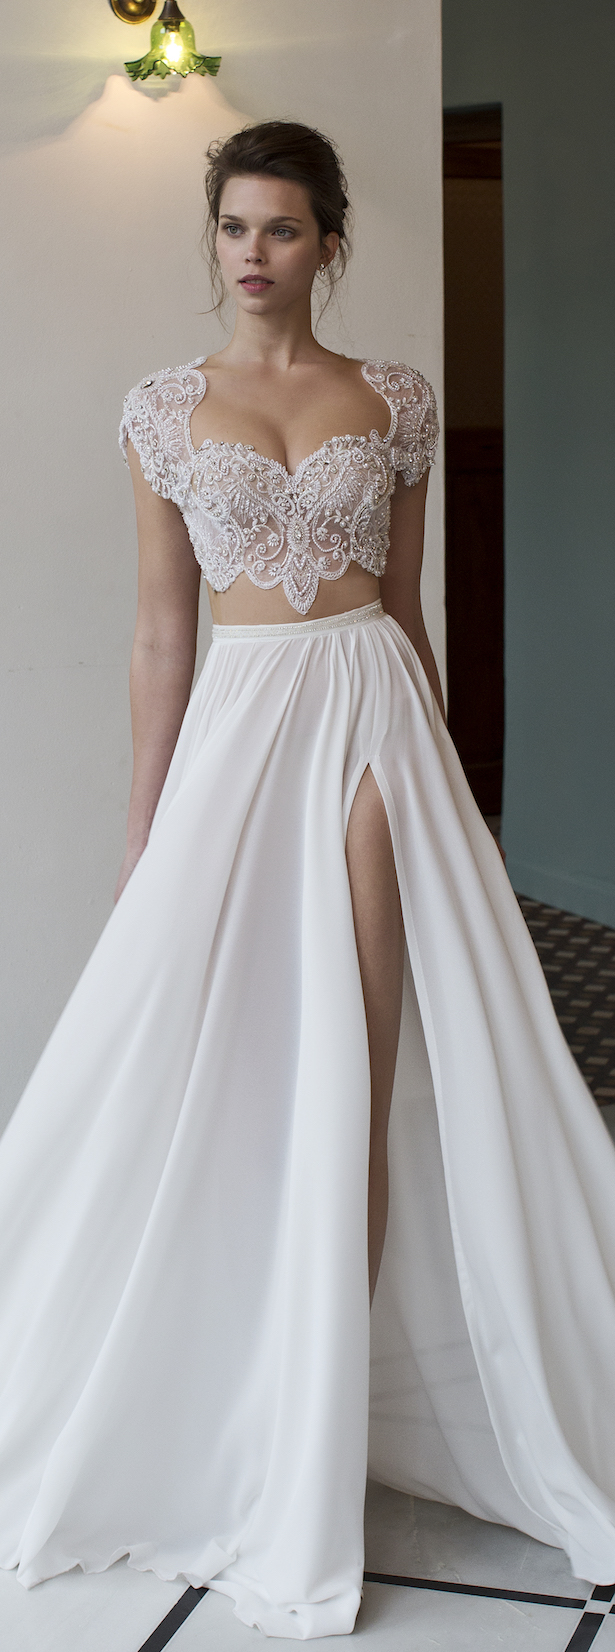 bridal trends two piece wedding dresses two piece wedding dress Bridal Trends Two Piece Wedding Dress Riki Dalal Verona Collection